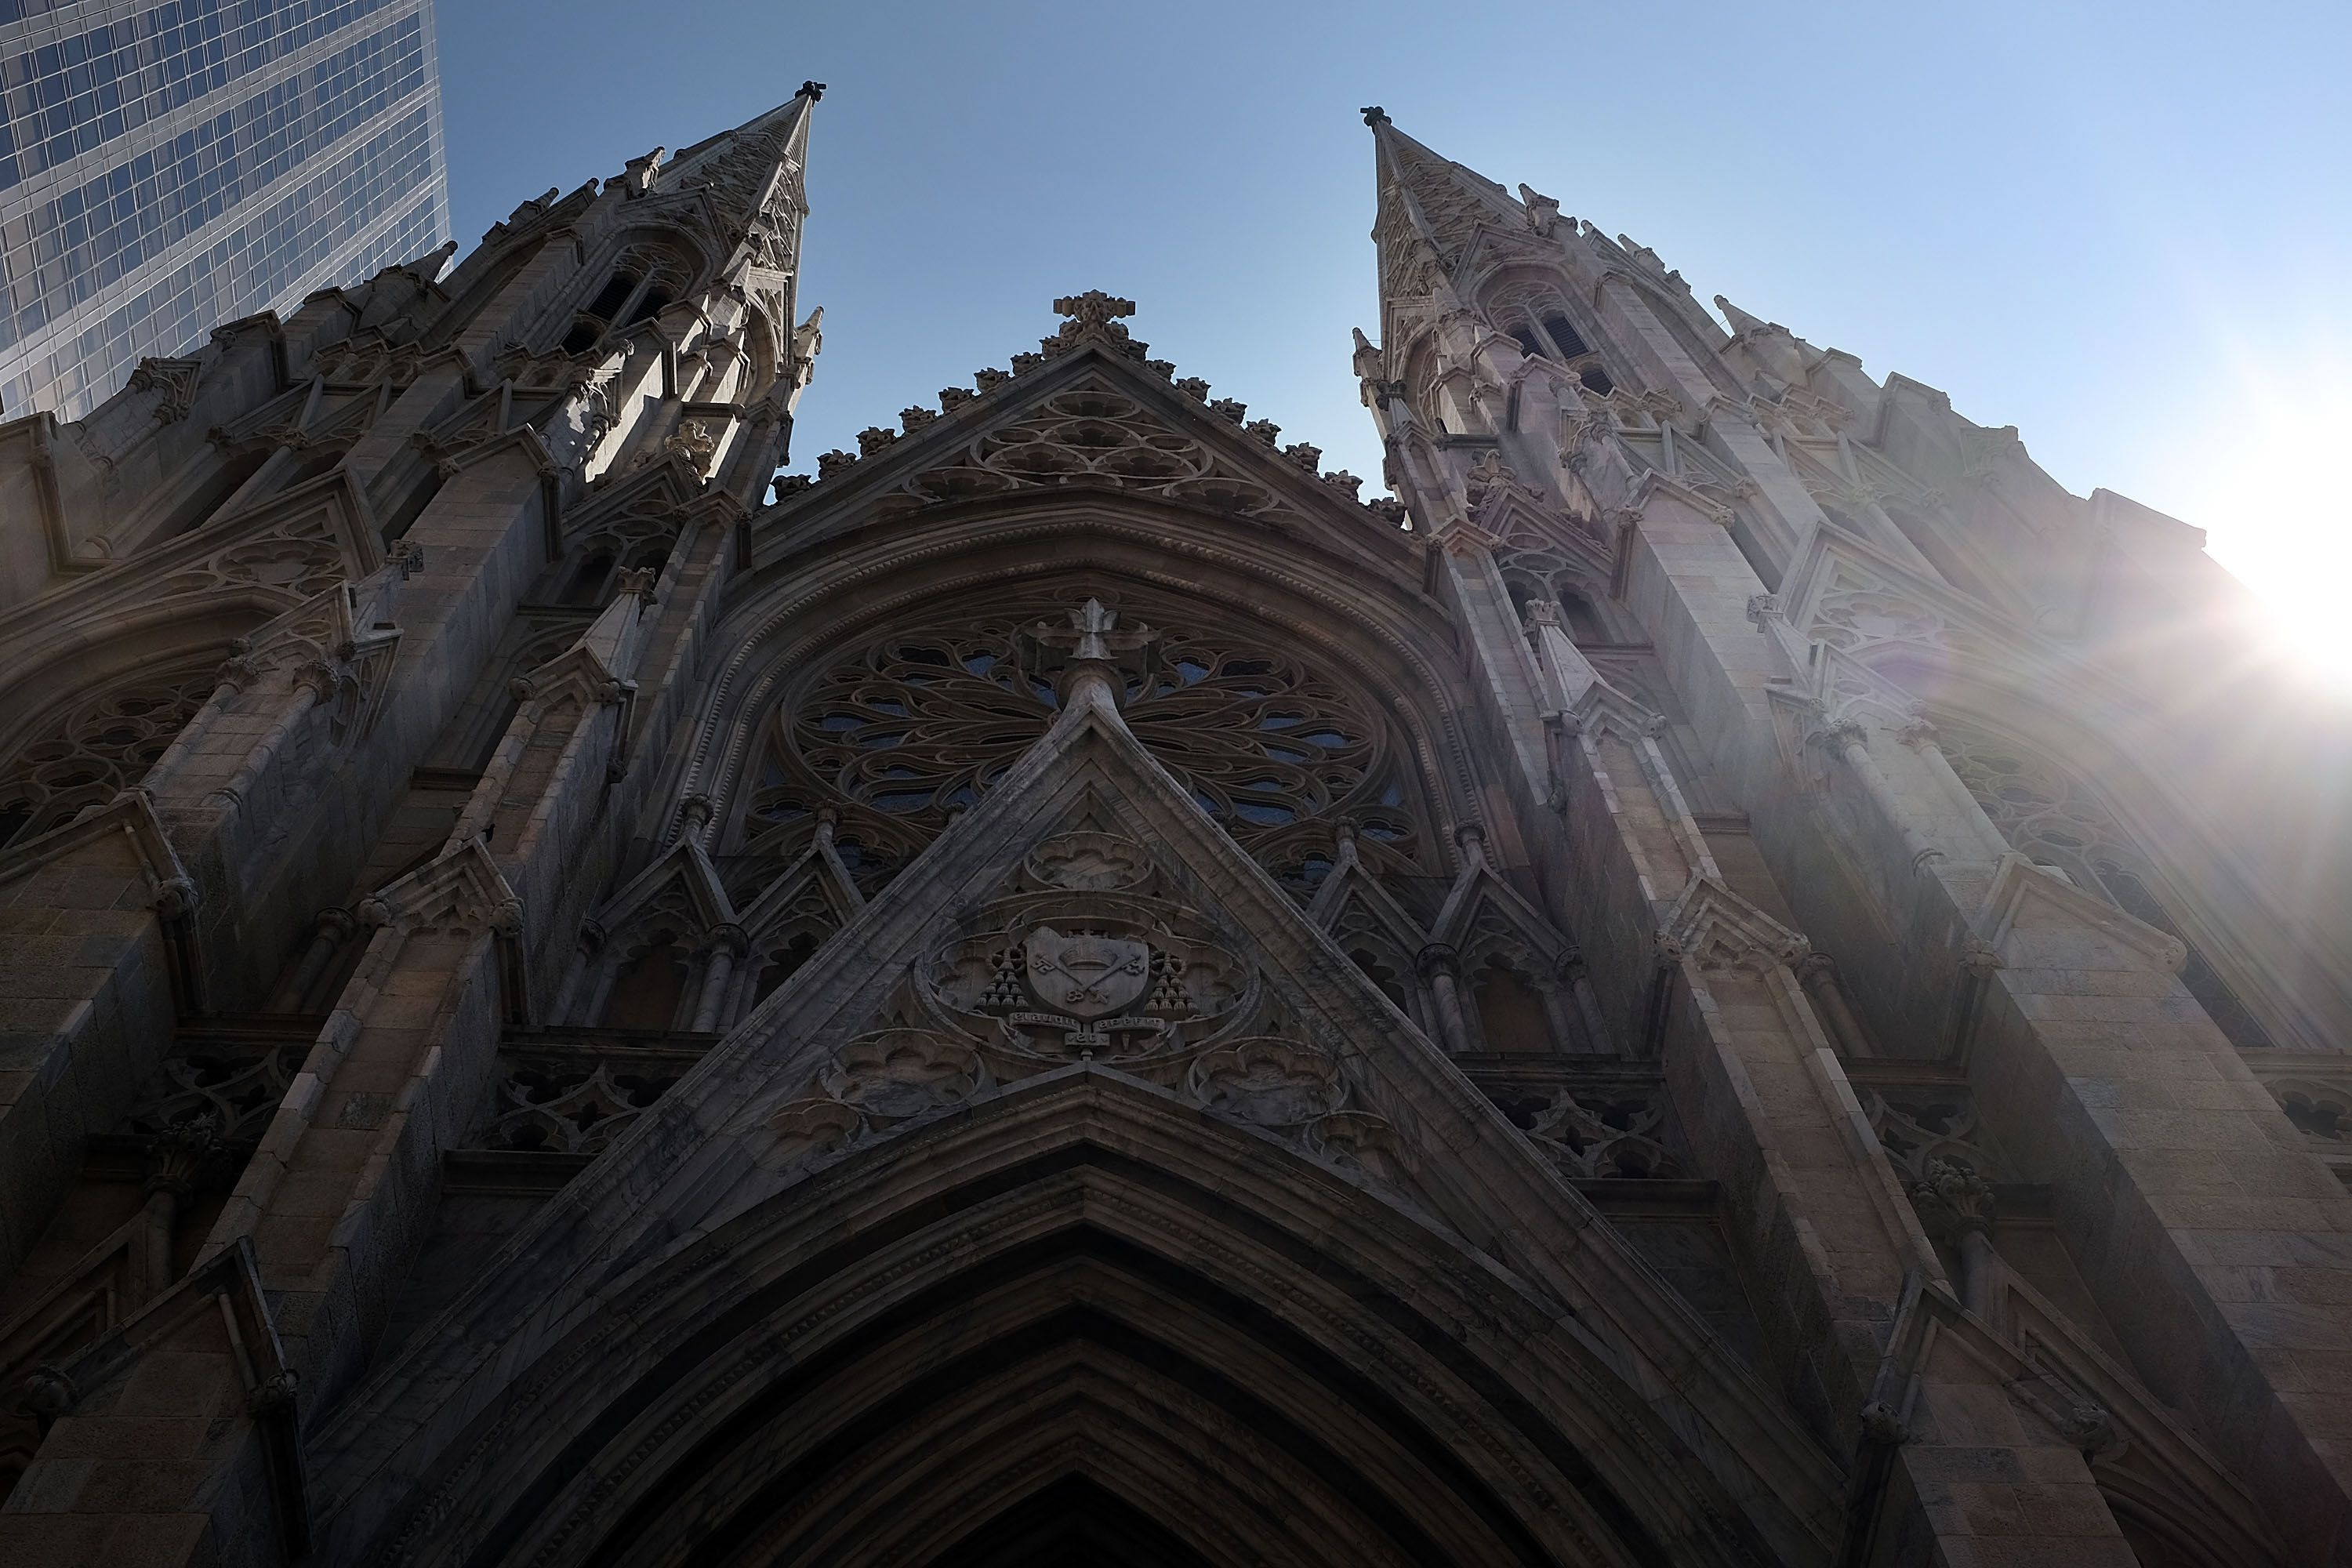 NY to investigate child sexual abuse claims in Catholic dioceses